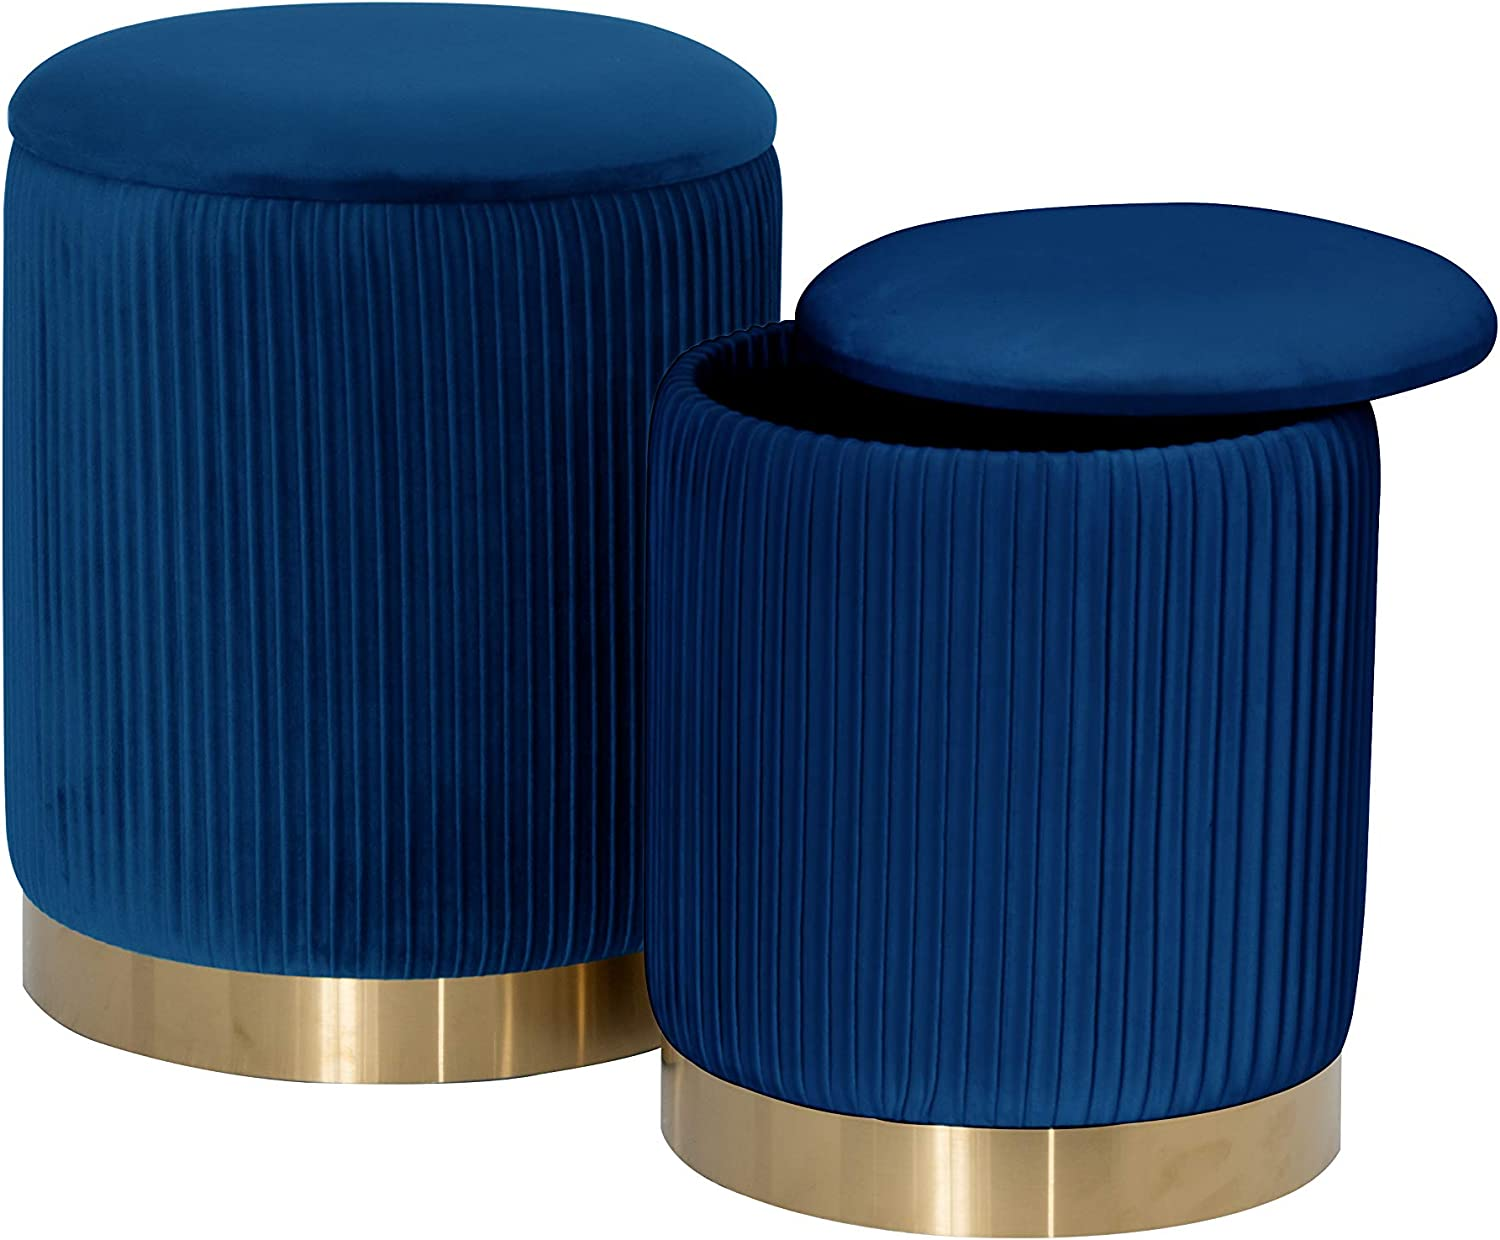 Max 44% OFF Best Quality Furniture Blue 40% OFF Cheap Sale Ottoman